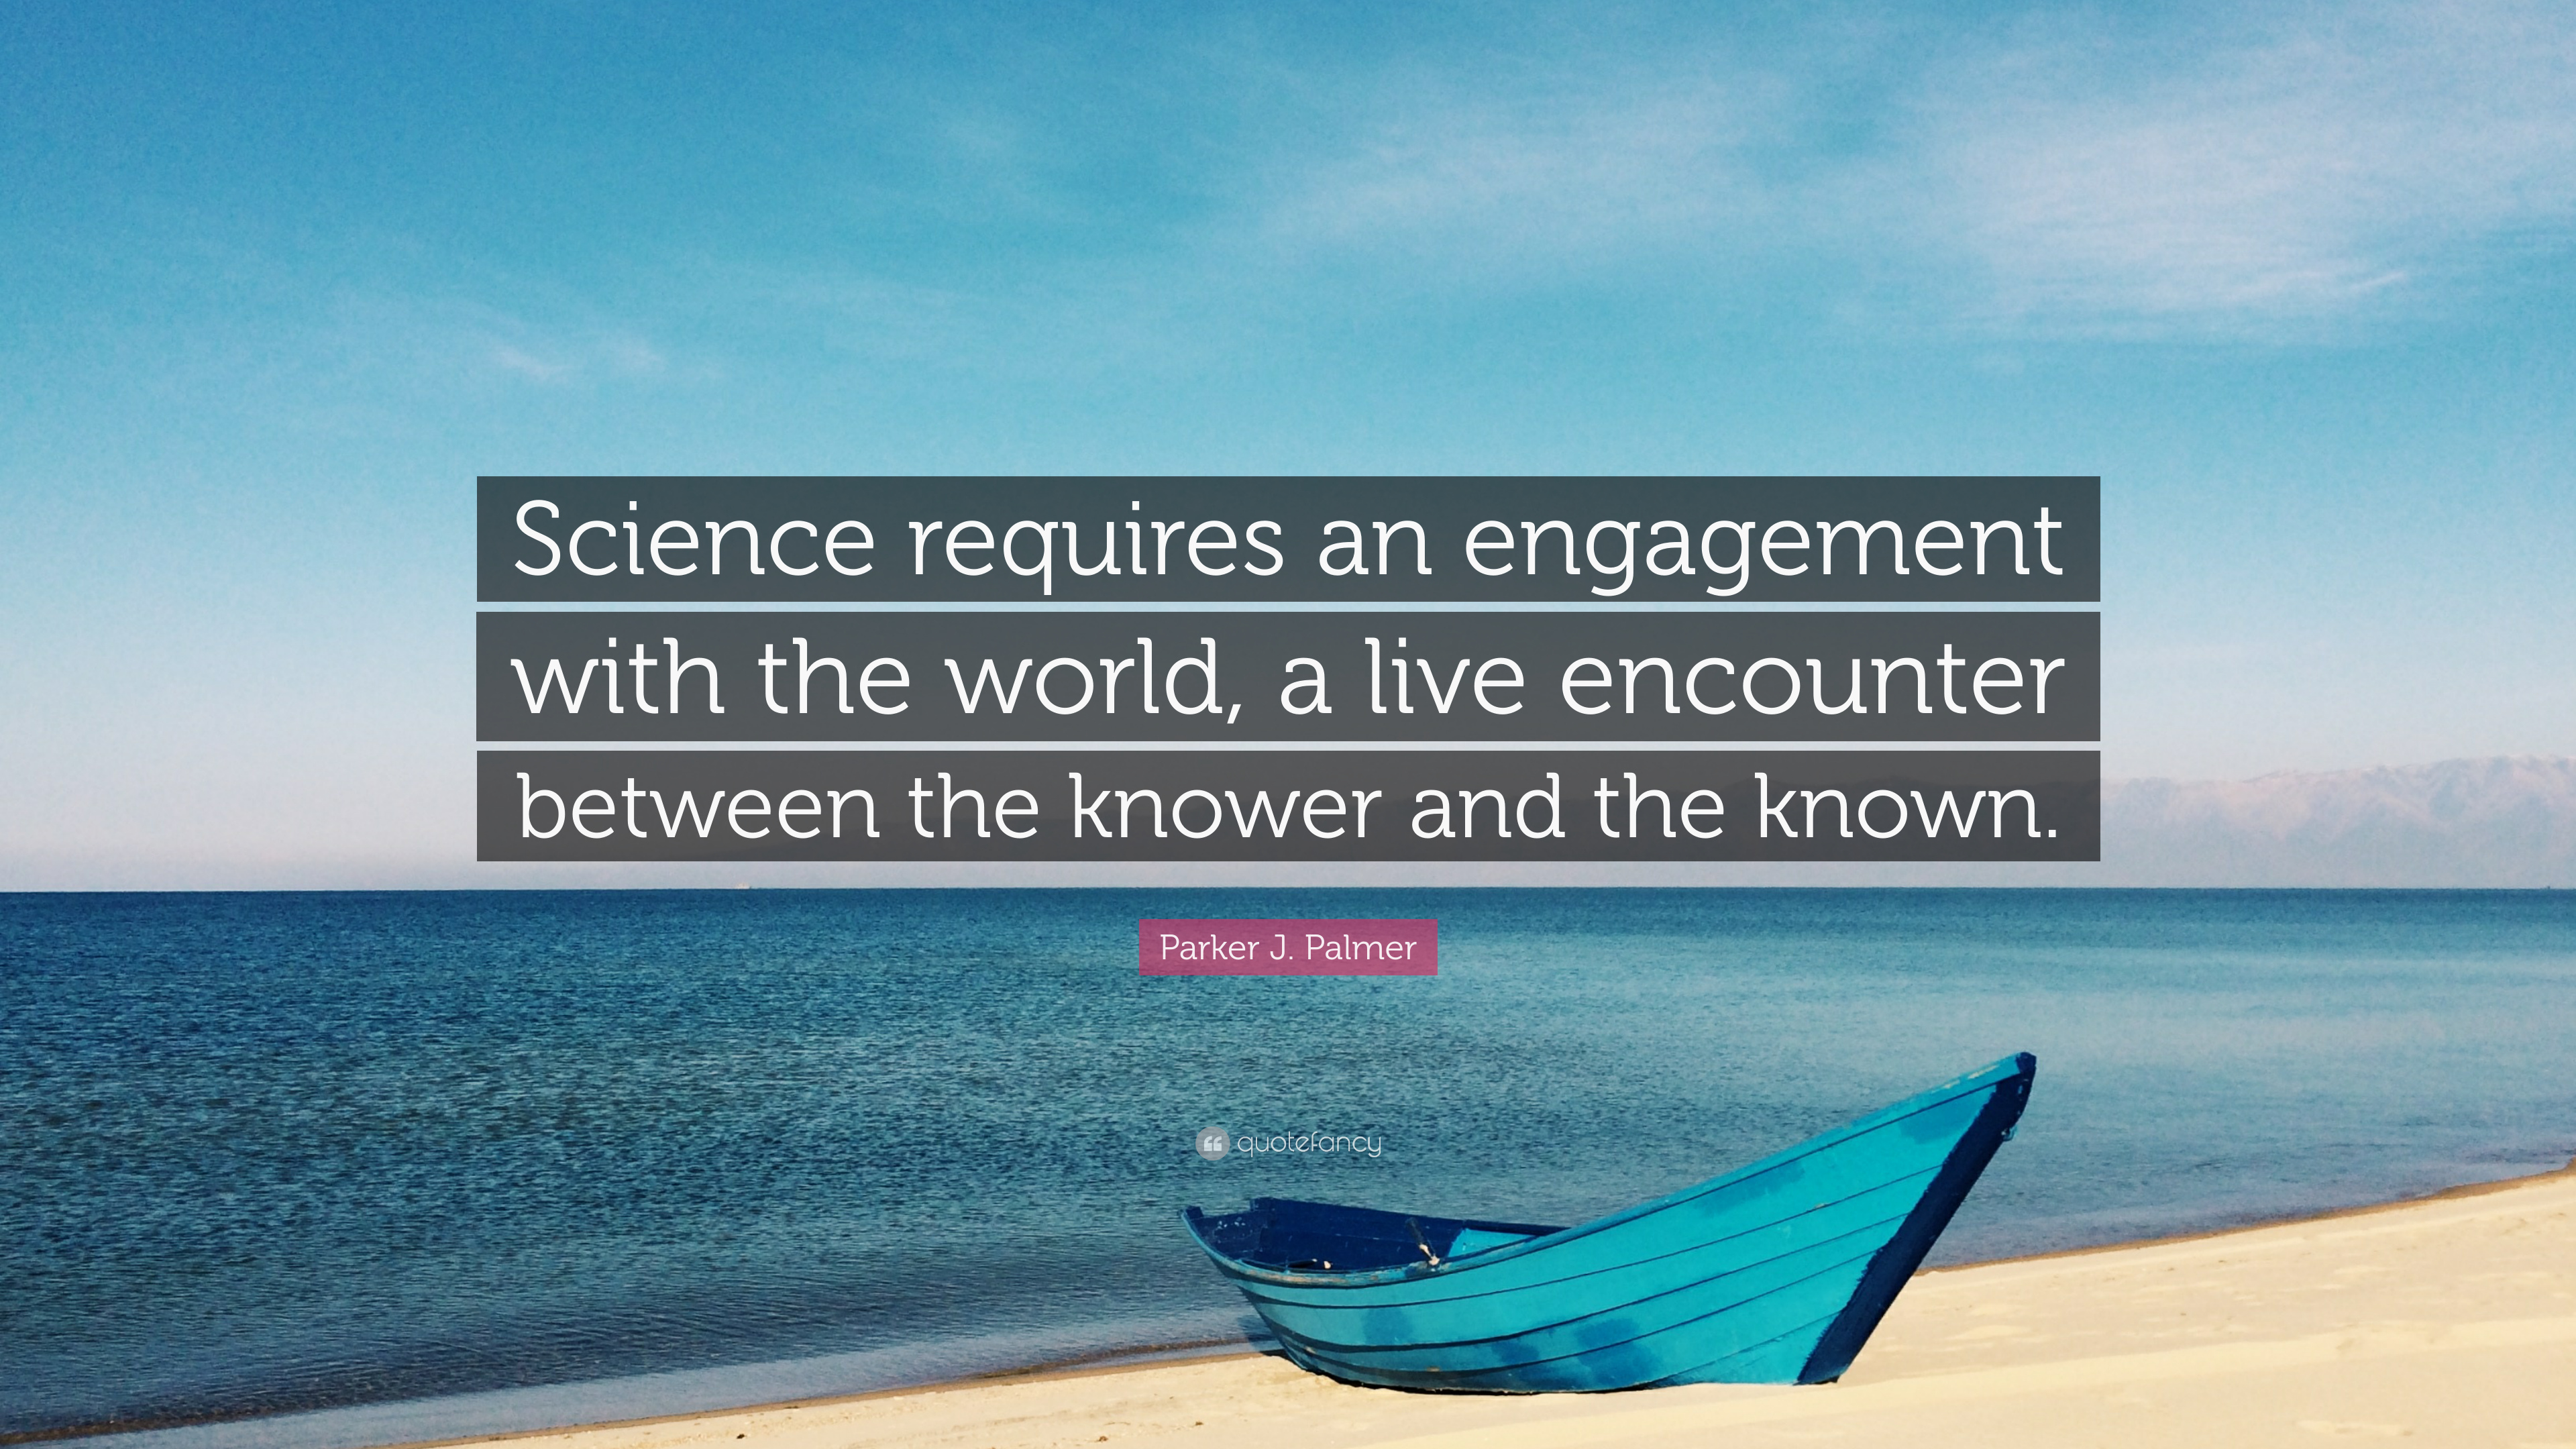 Parker j palmer quote science requires an engagement with the world a